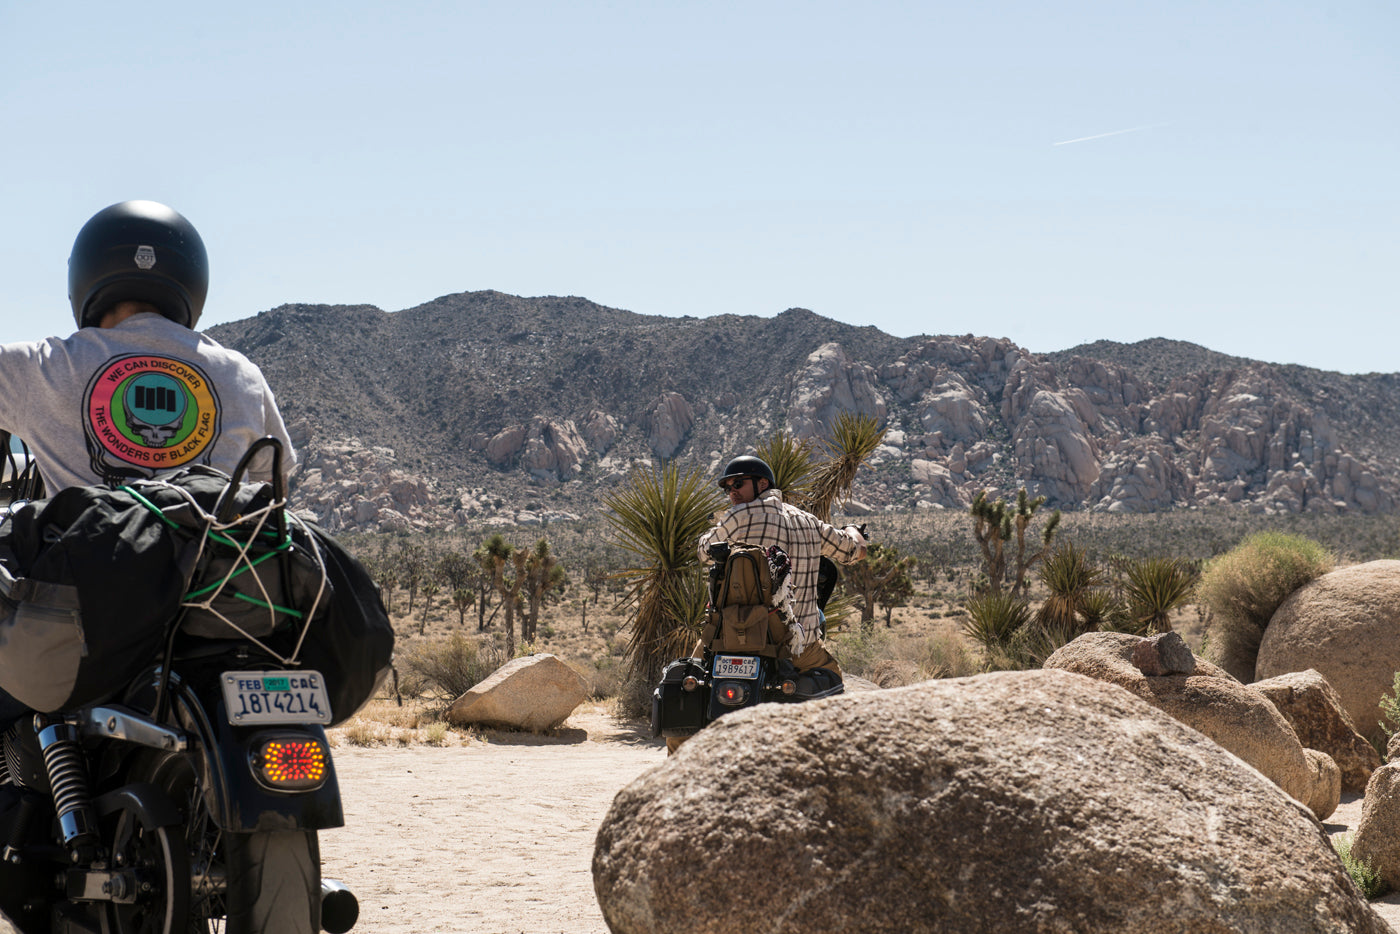 What to do in Joshua Tree National Park